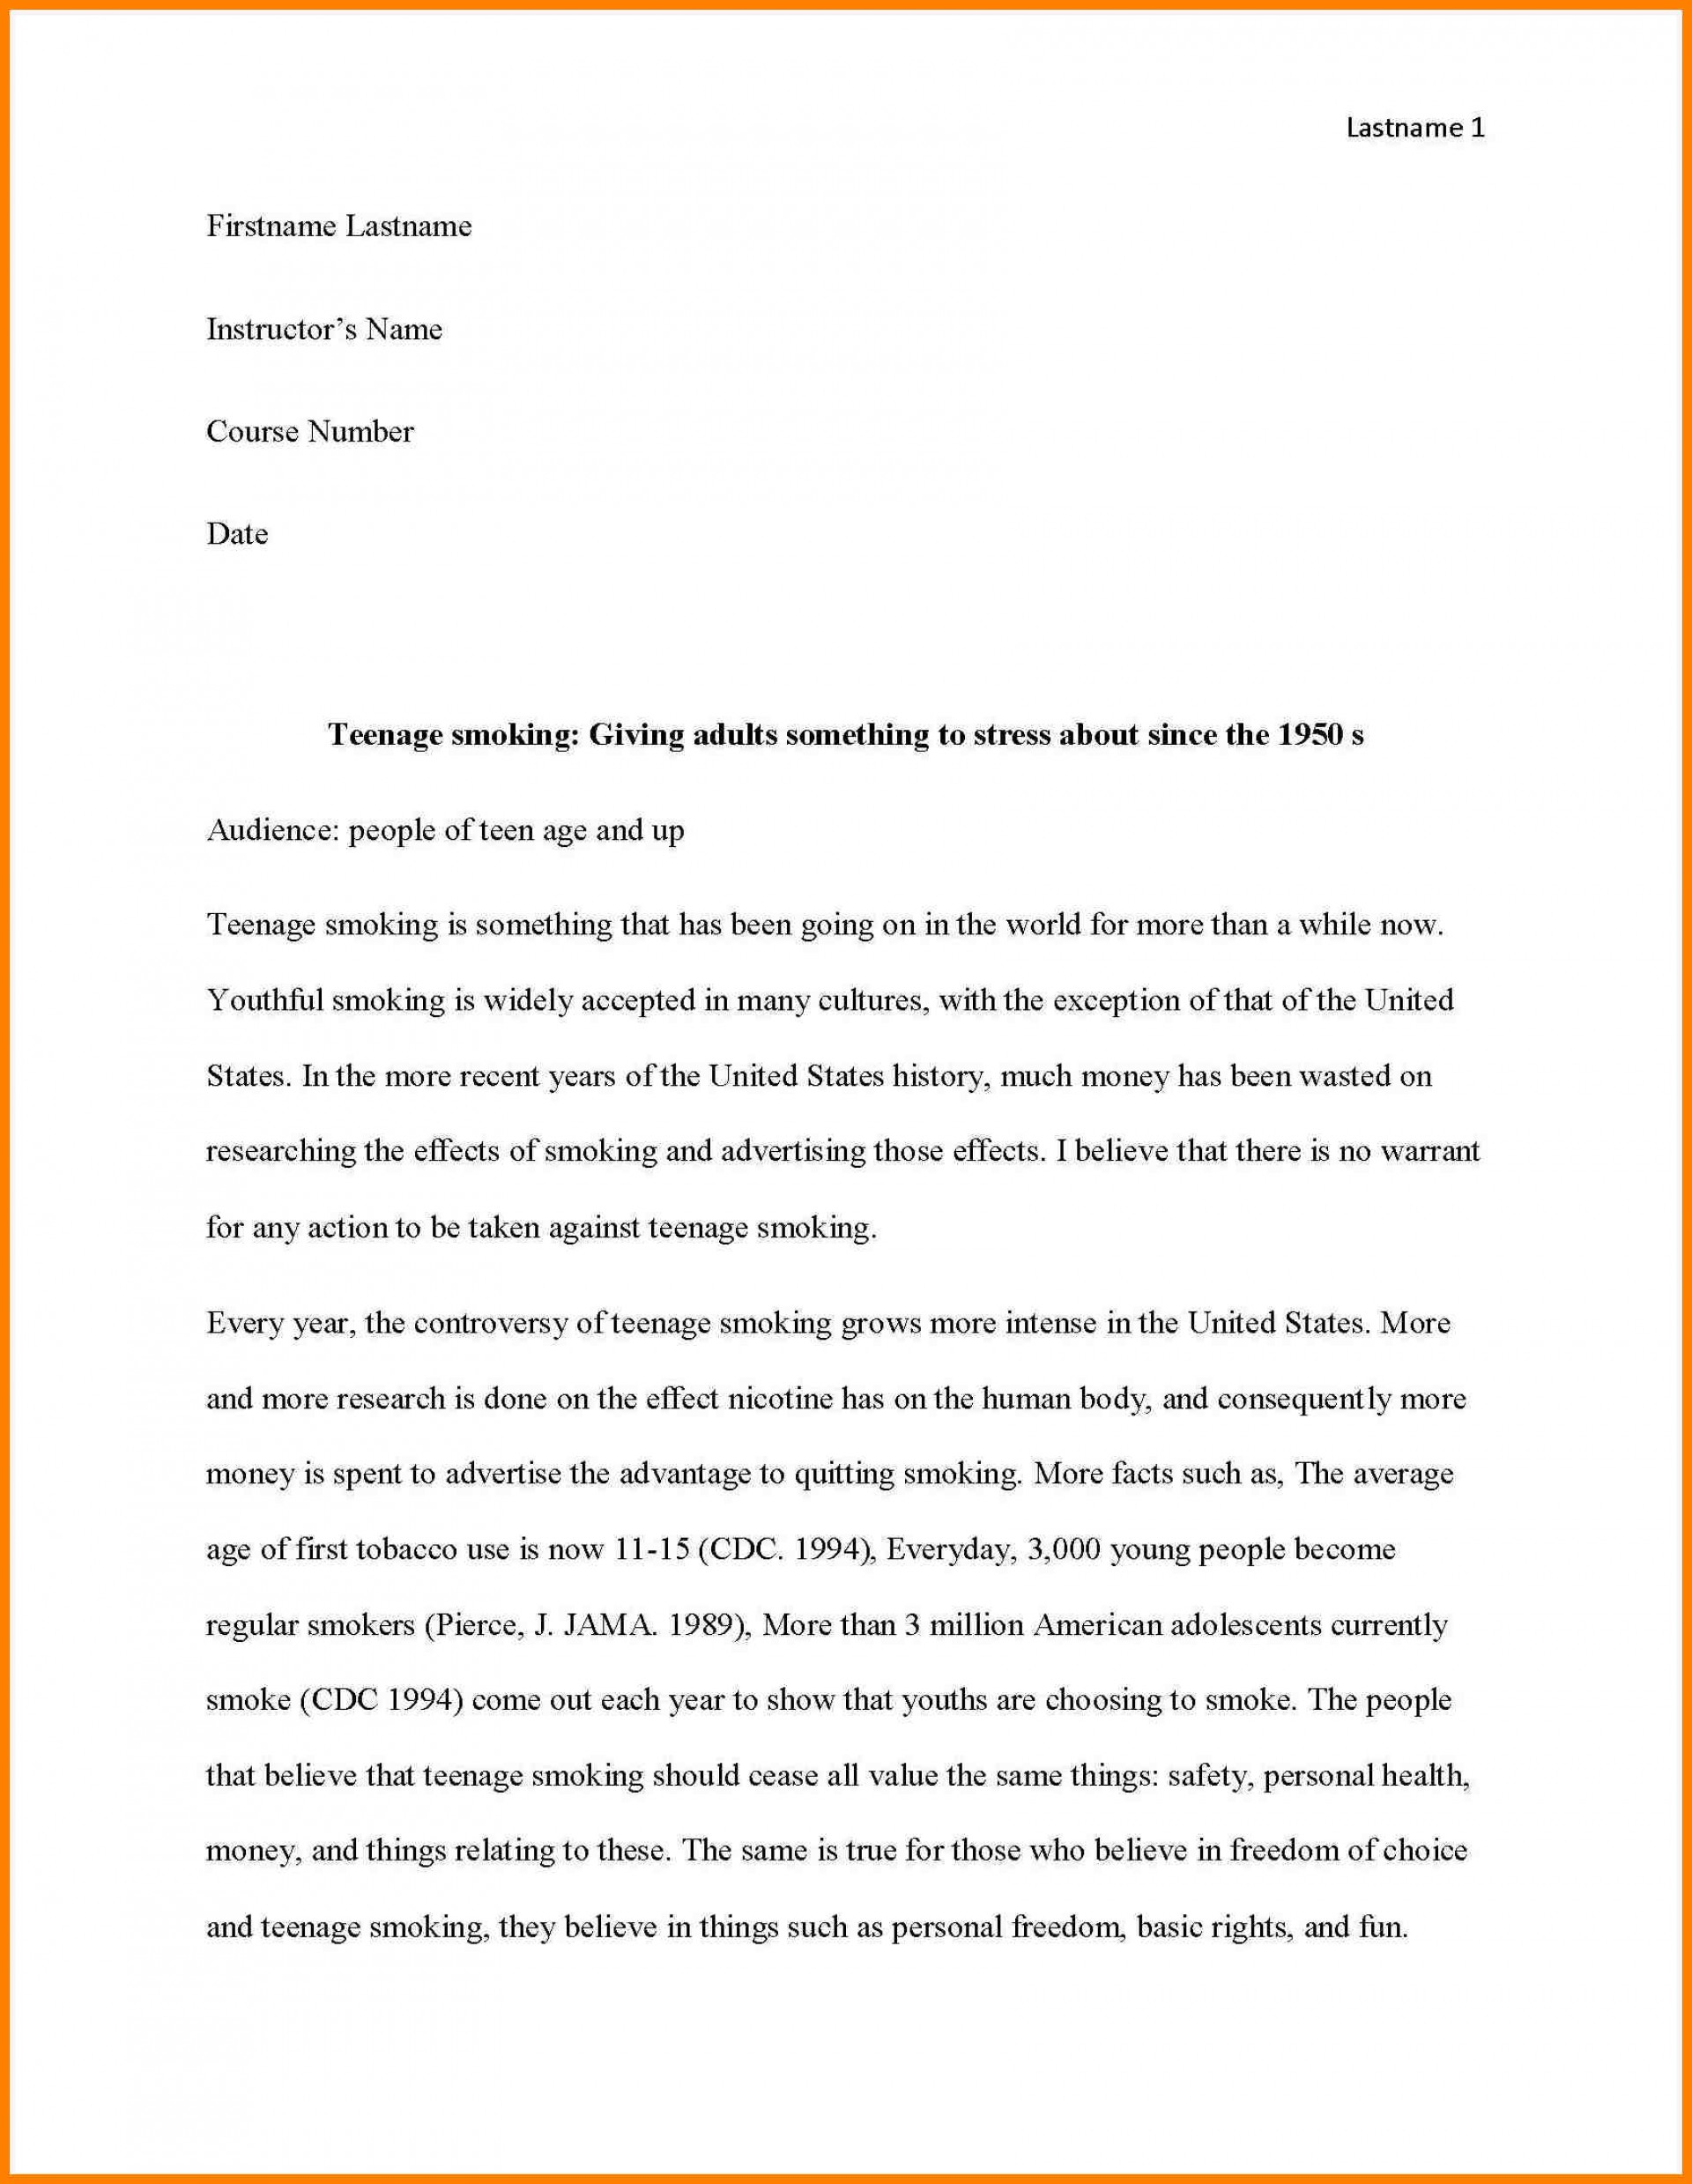 005 Cosmetology Essay Example High School Persuasive Waiter Bartender Cover Letter Essays Bar Staff Hair Stylist Relocation Phd Medical Set Resume Description Interior Design Event Archaicawful Scholarship Examples Conclusion 1920